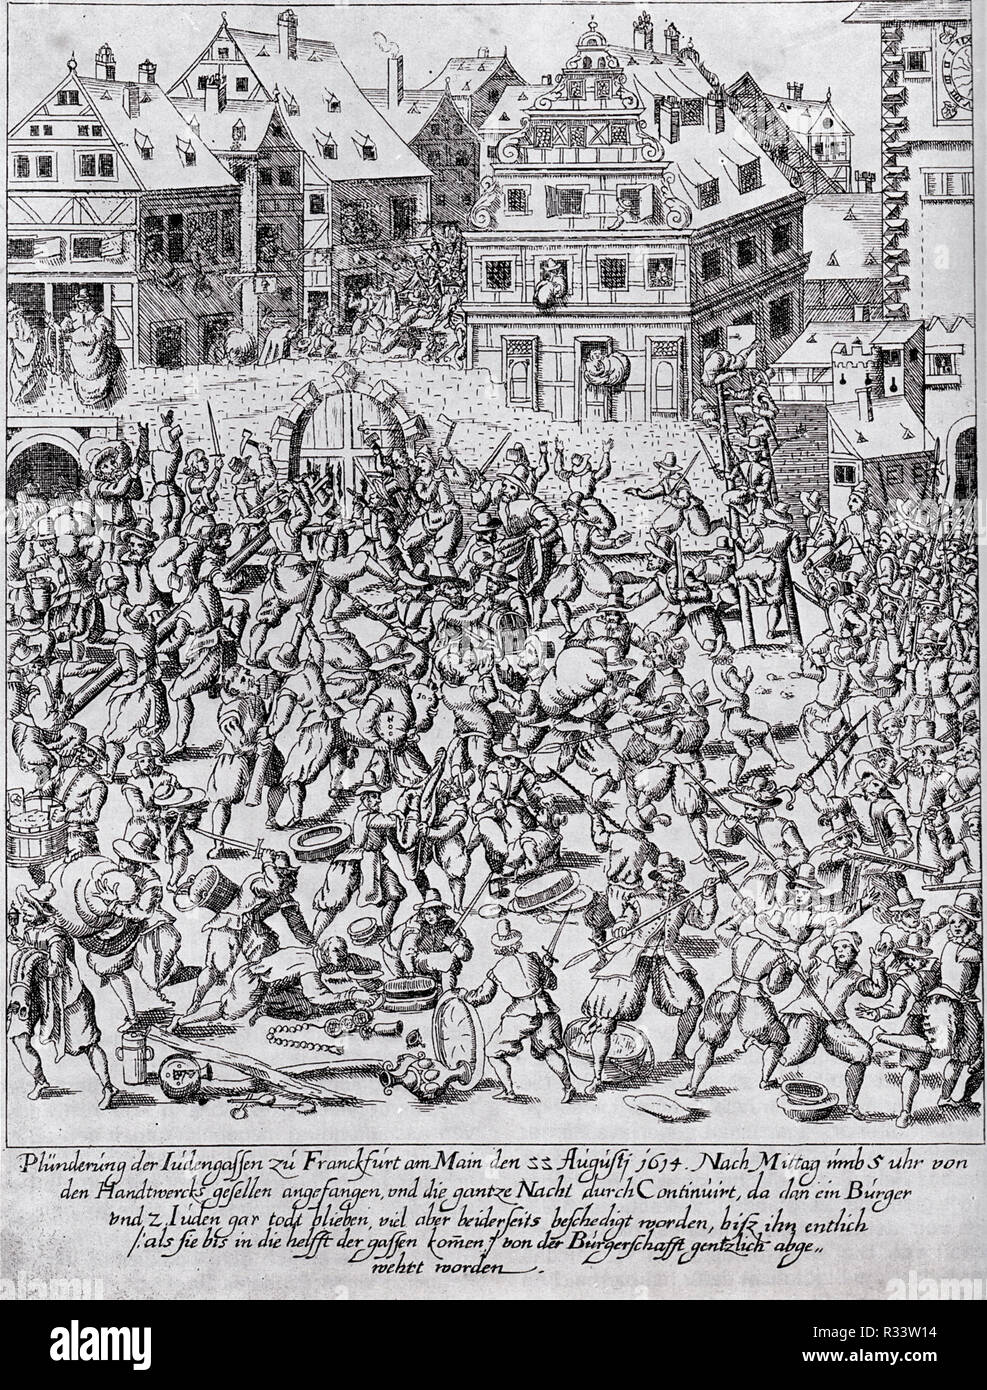 Fettmilch Riot: The plundering of the Judengasse (Jewry) in Frankfurt on August 22, 1614 - Stock Image